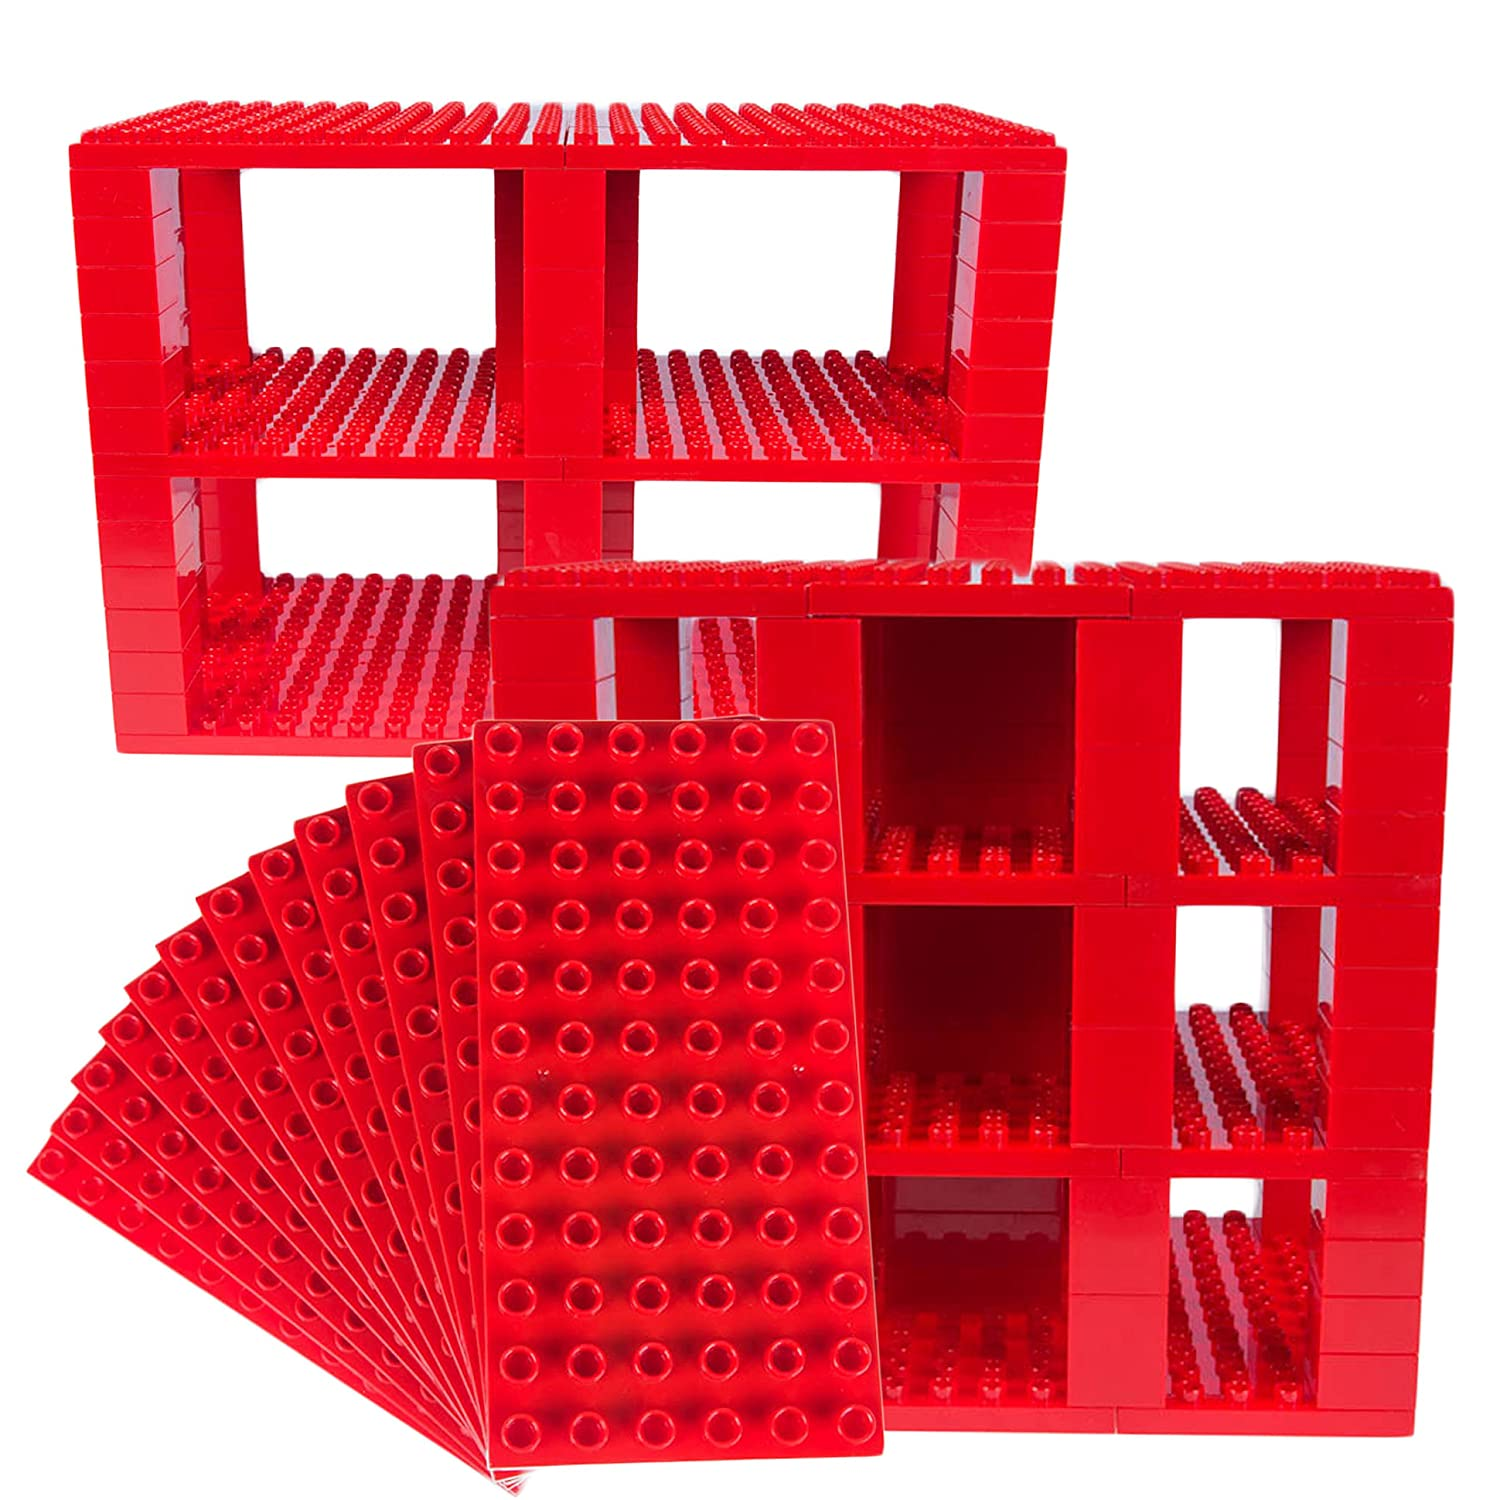 Classic Big Briks 96 Piece Set by Strictly Briks | 100% Compatible with All Major Brands | Tower Construction | Large Pegs for Toddlers | Ages 3+ | Building Bricks & Baseplates | Red Review